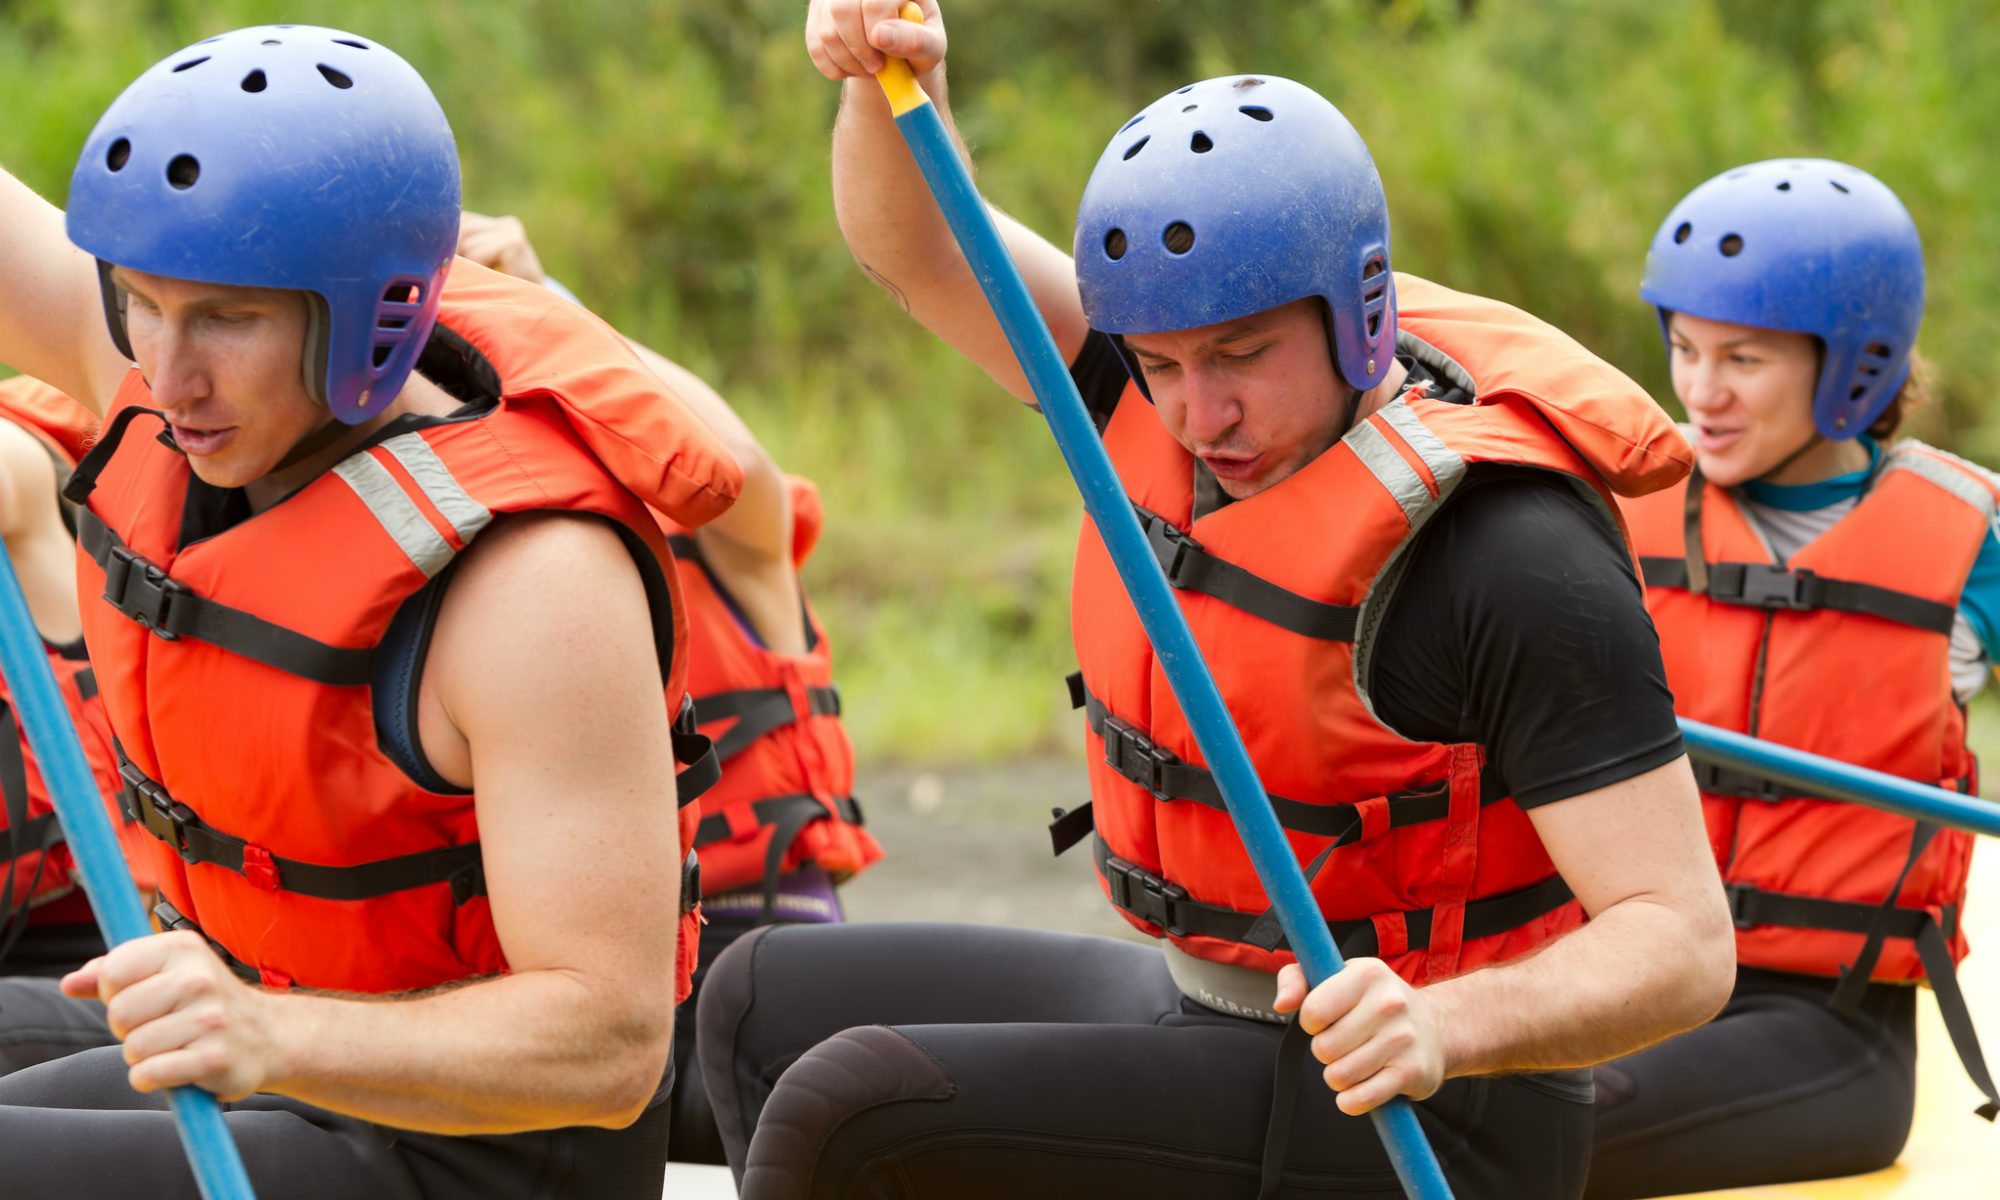 A group of white water rafting participants using their paddles to steer the boat.